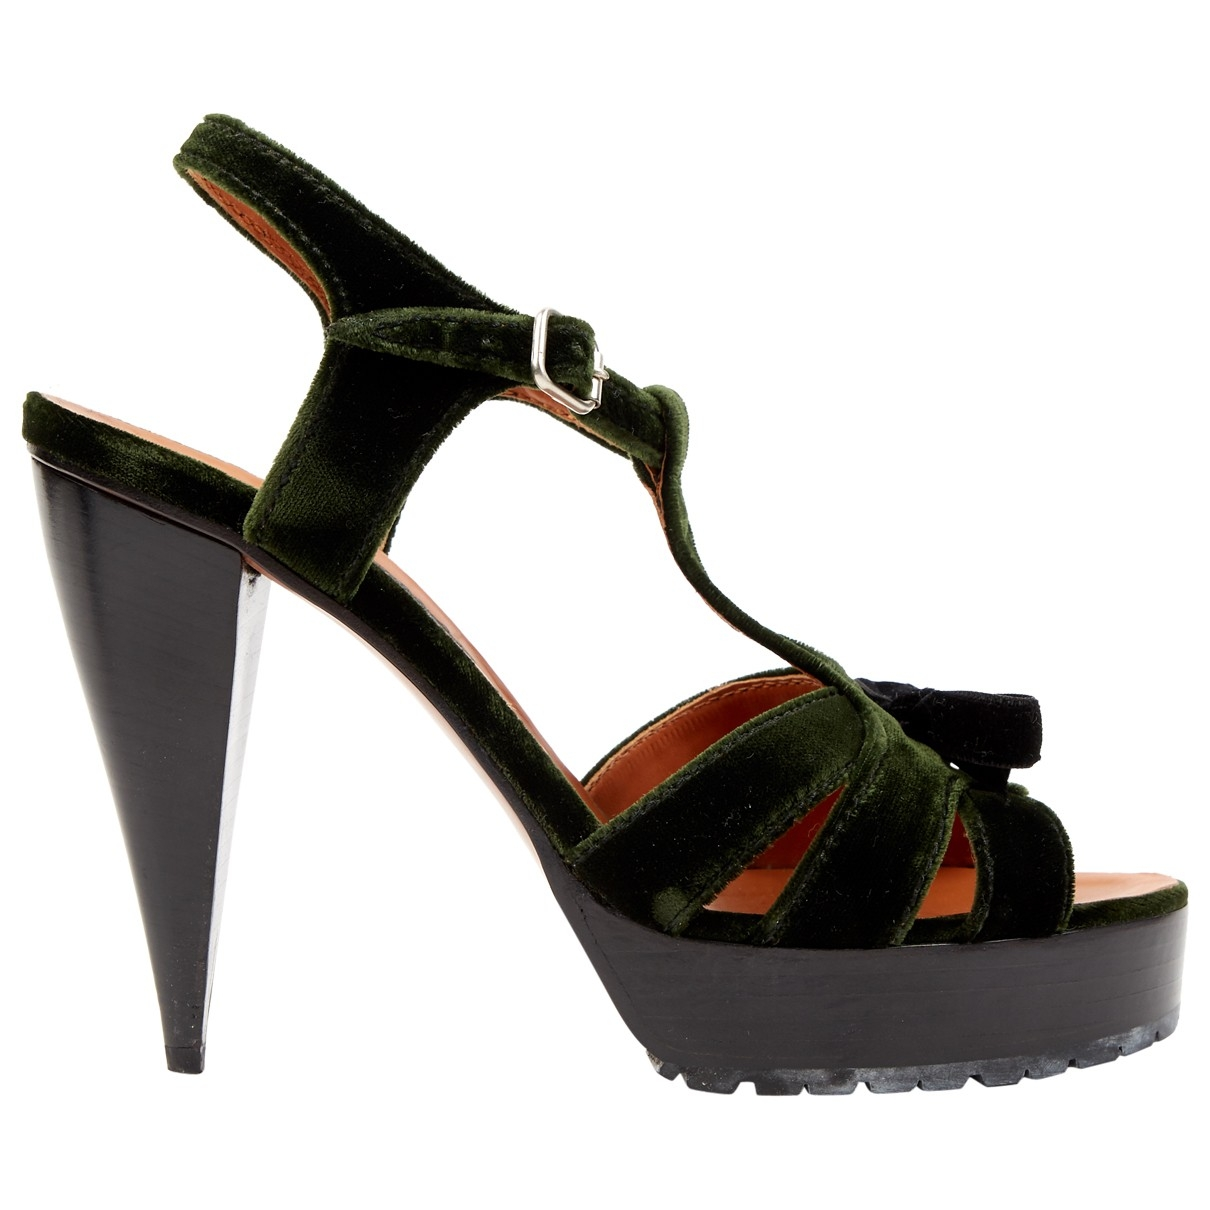 Lanvin \N Green Velvet Heels for Women 40 EU